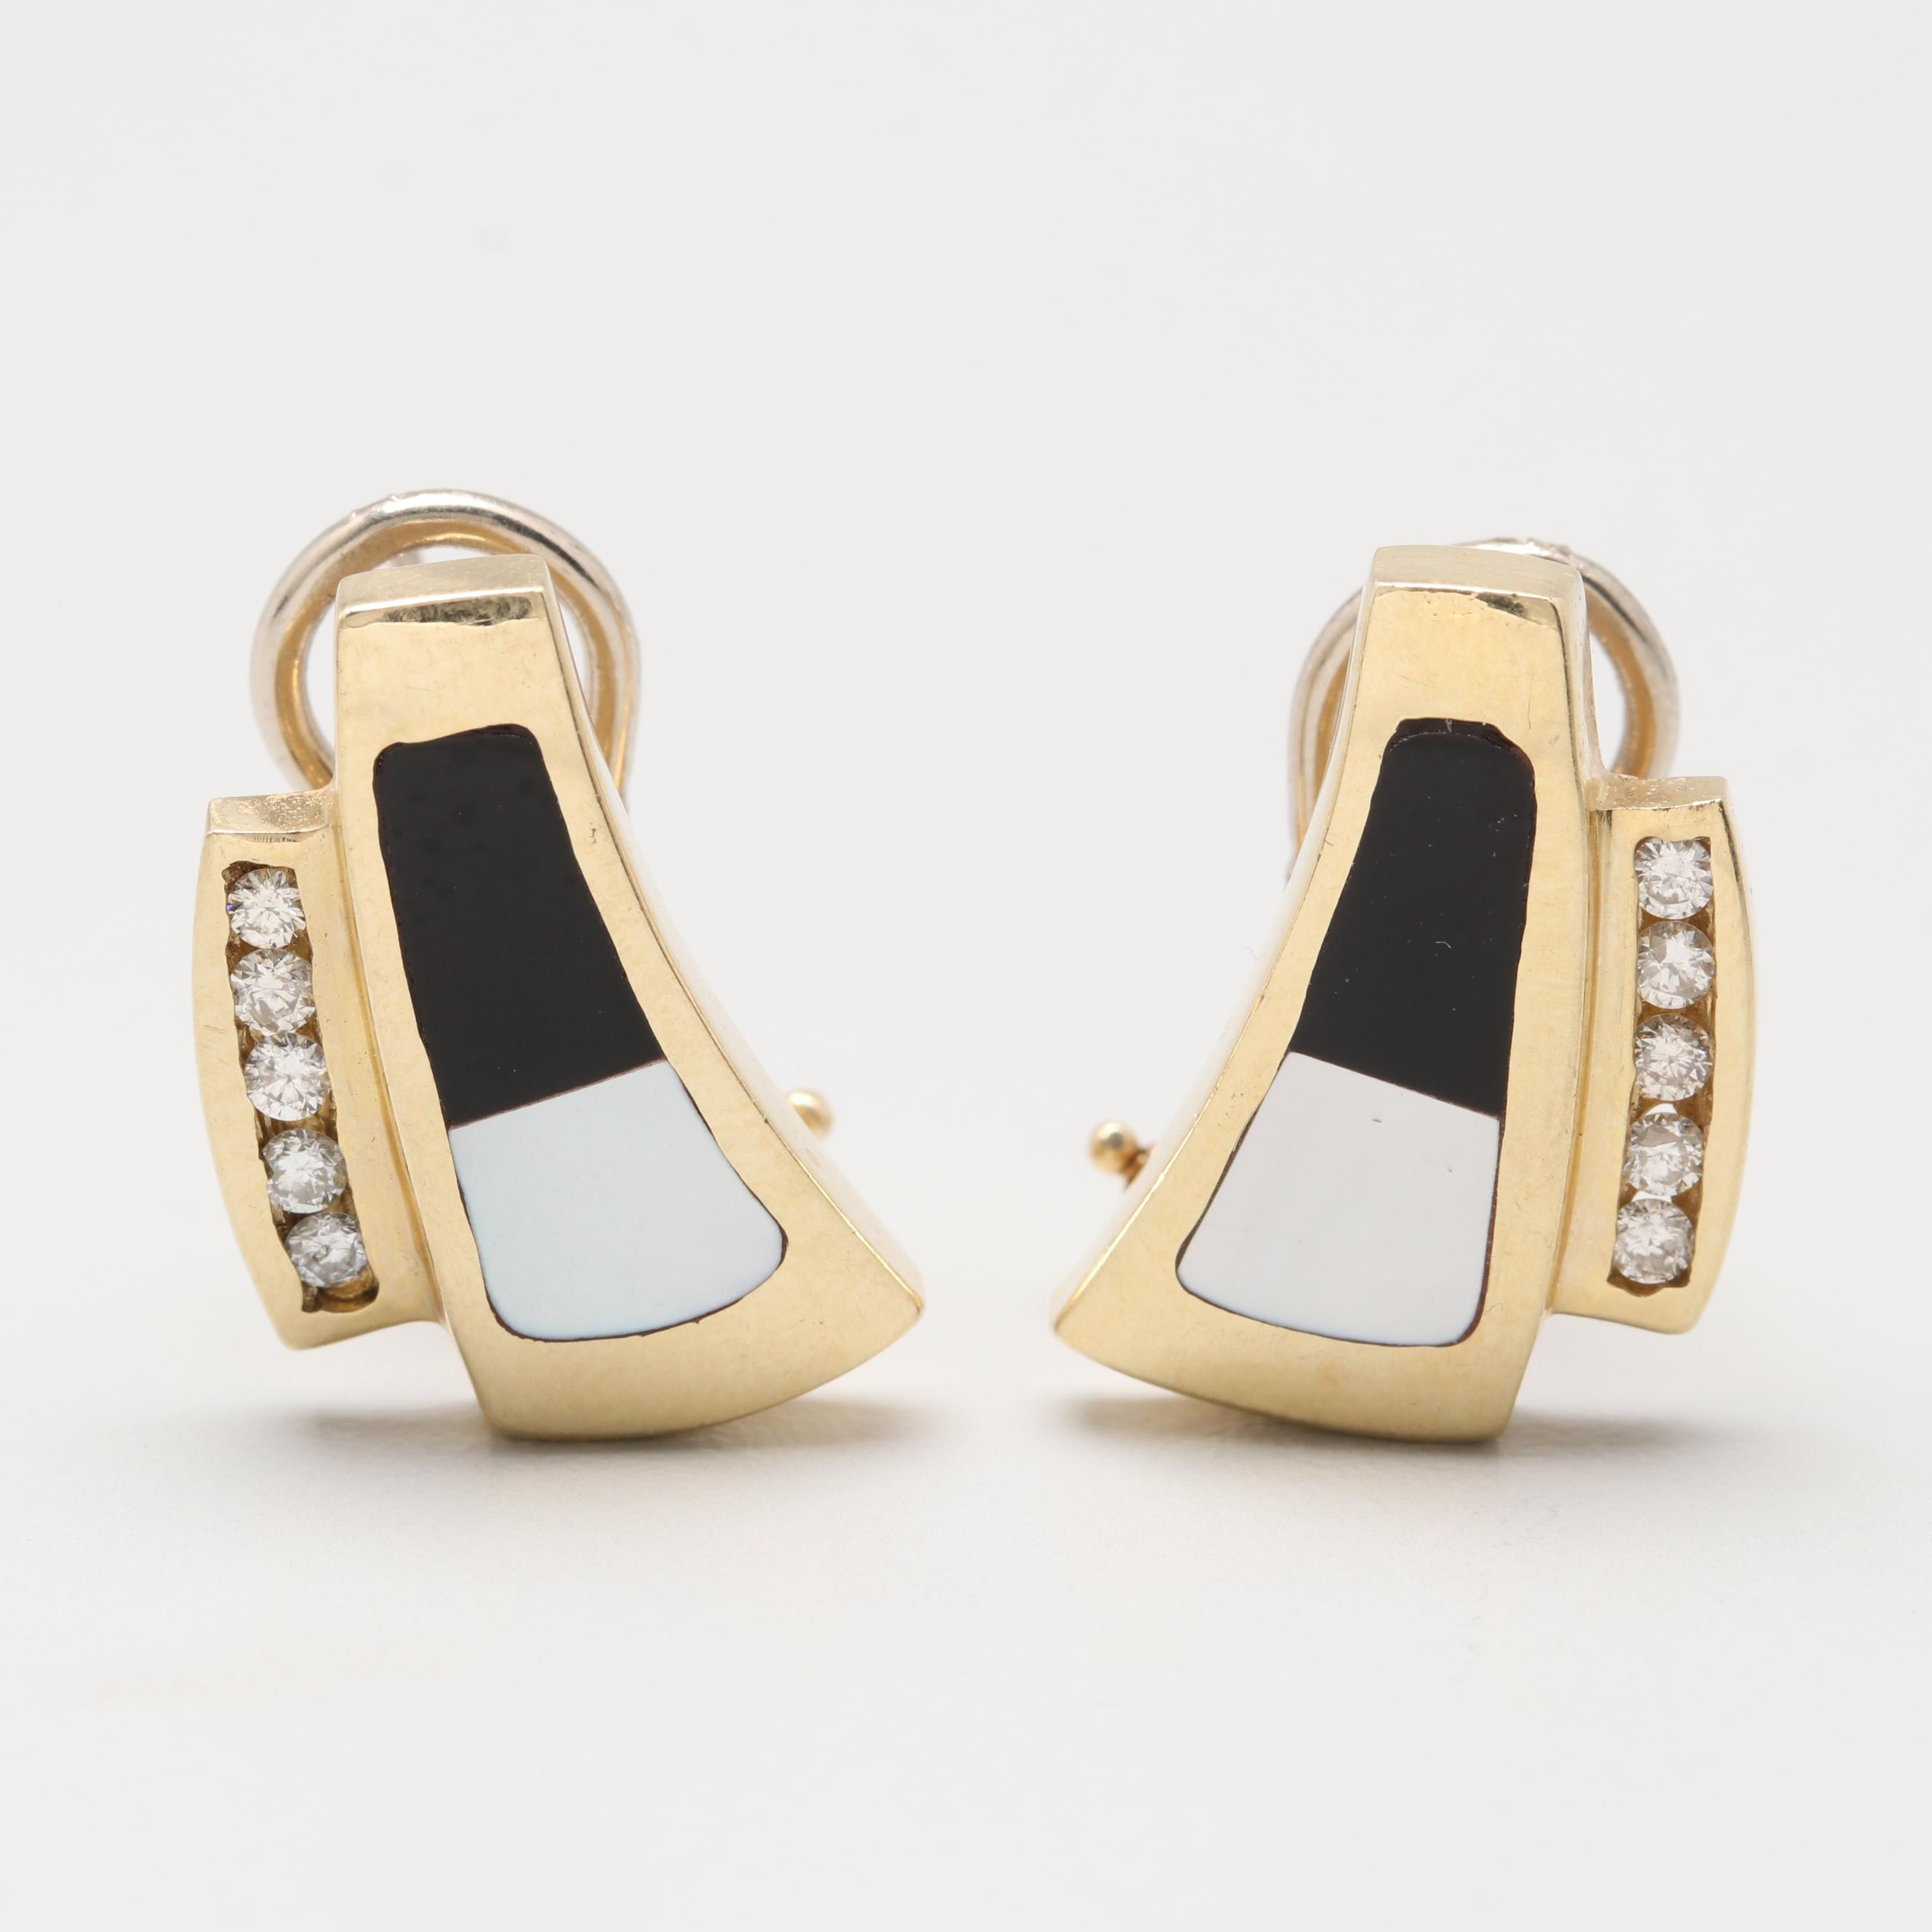 14K Yellow Gold Diamond Earrings with Onyx and Mother of Pearl Inlay